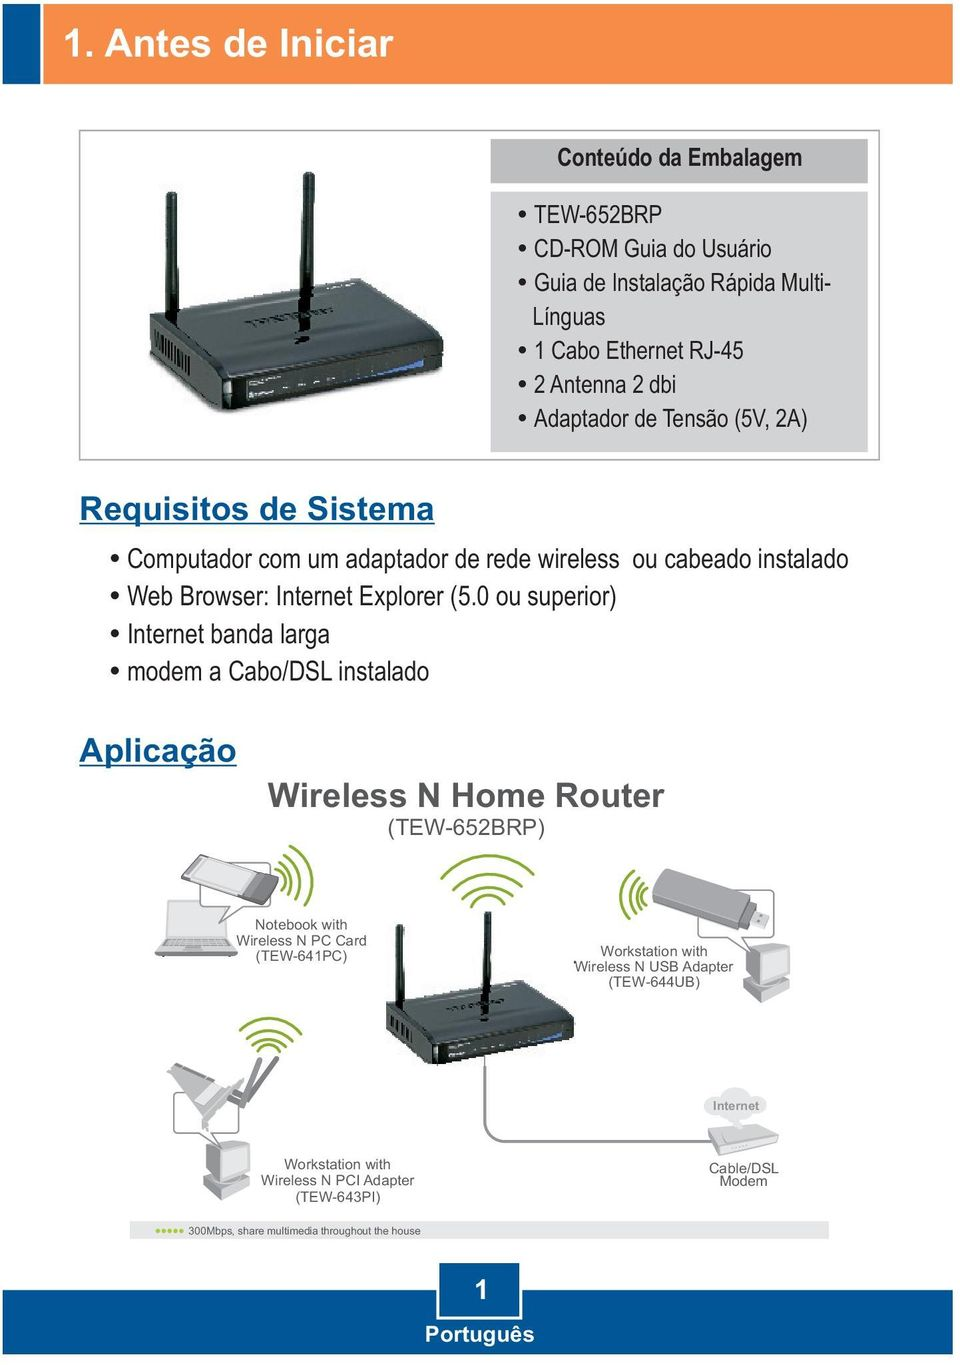 0 ou superior) Internet banda larga modem a Cabo/DSL instalado Aplicação Wireless N Home Router (TEW-652BRP) Notebook with Wireless N PC Card (TEW-641PC)